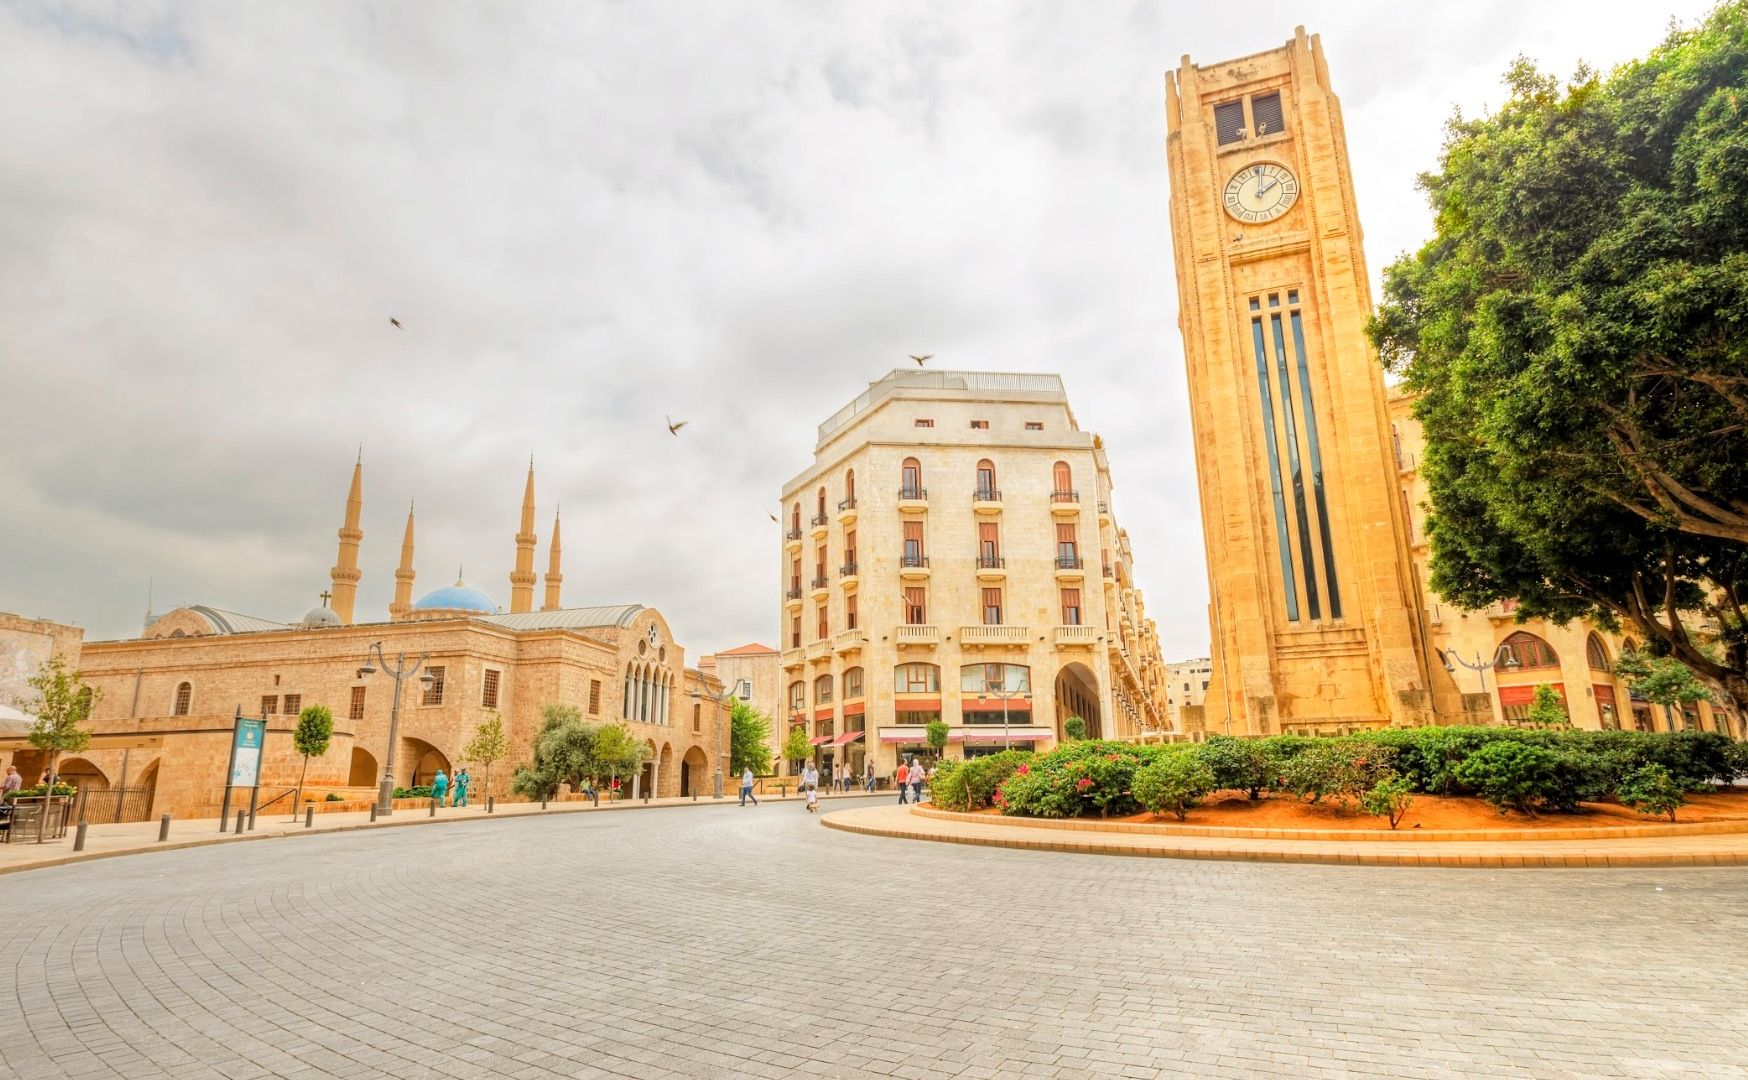 Centre ville, Beyrouth - Liban